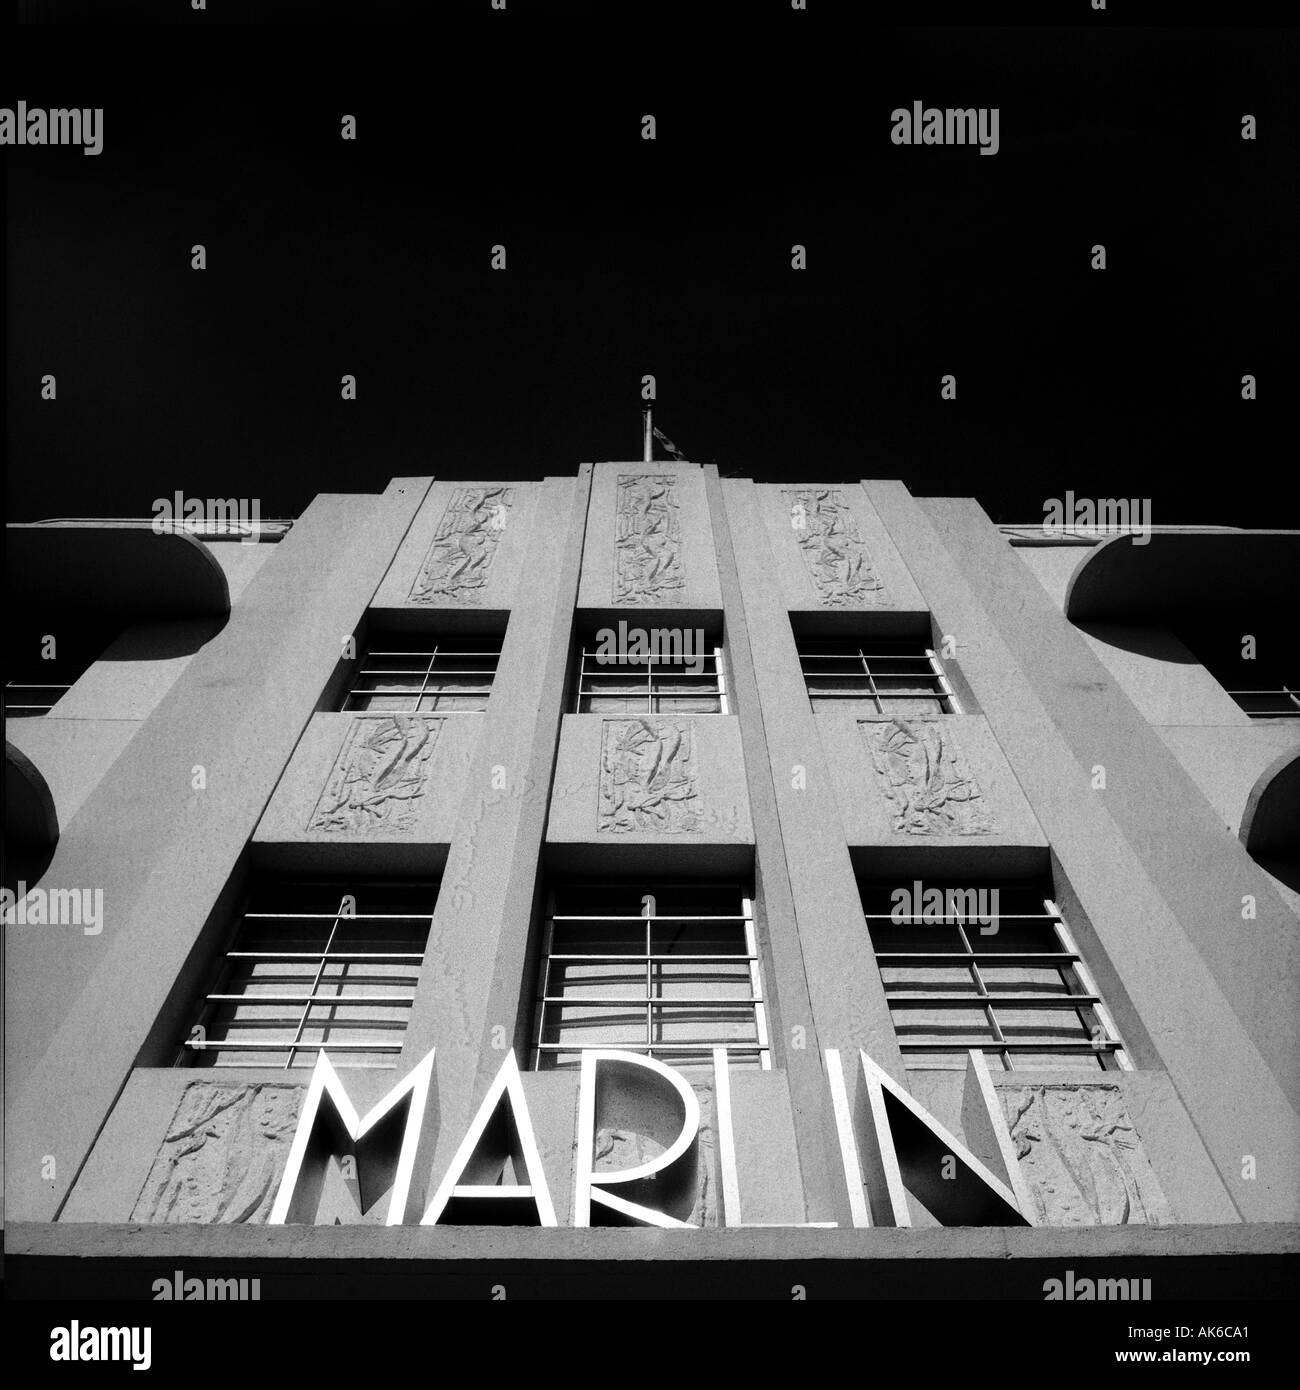 Façade de l'hôtel Marlin à Miami s quartier Art déco de South Beach Banque D'Images